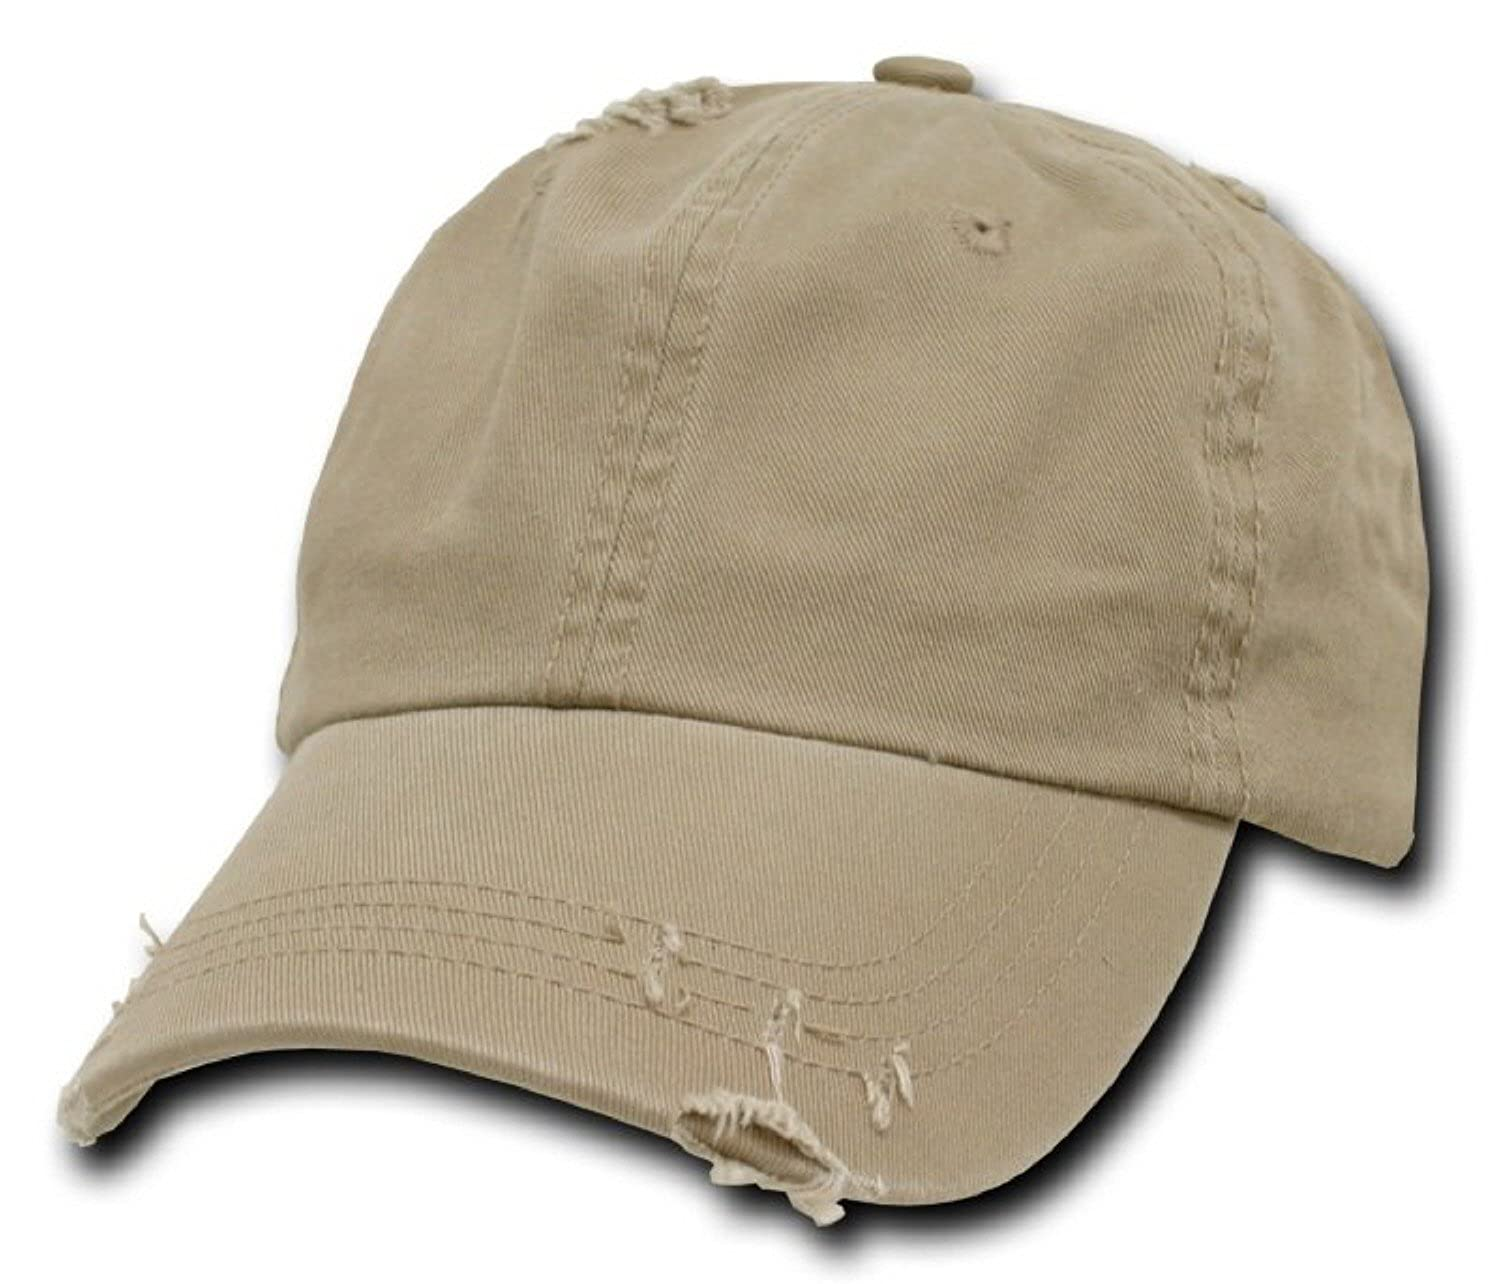 Amazon.com: DECKY Vintage Polo Cap Baseball Caps (Adjtable , khaki):  Clothing